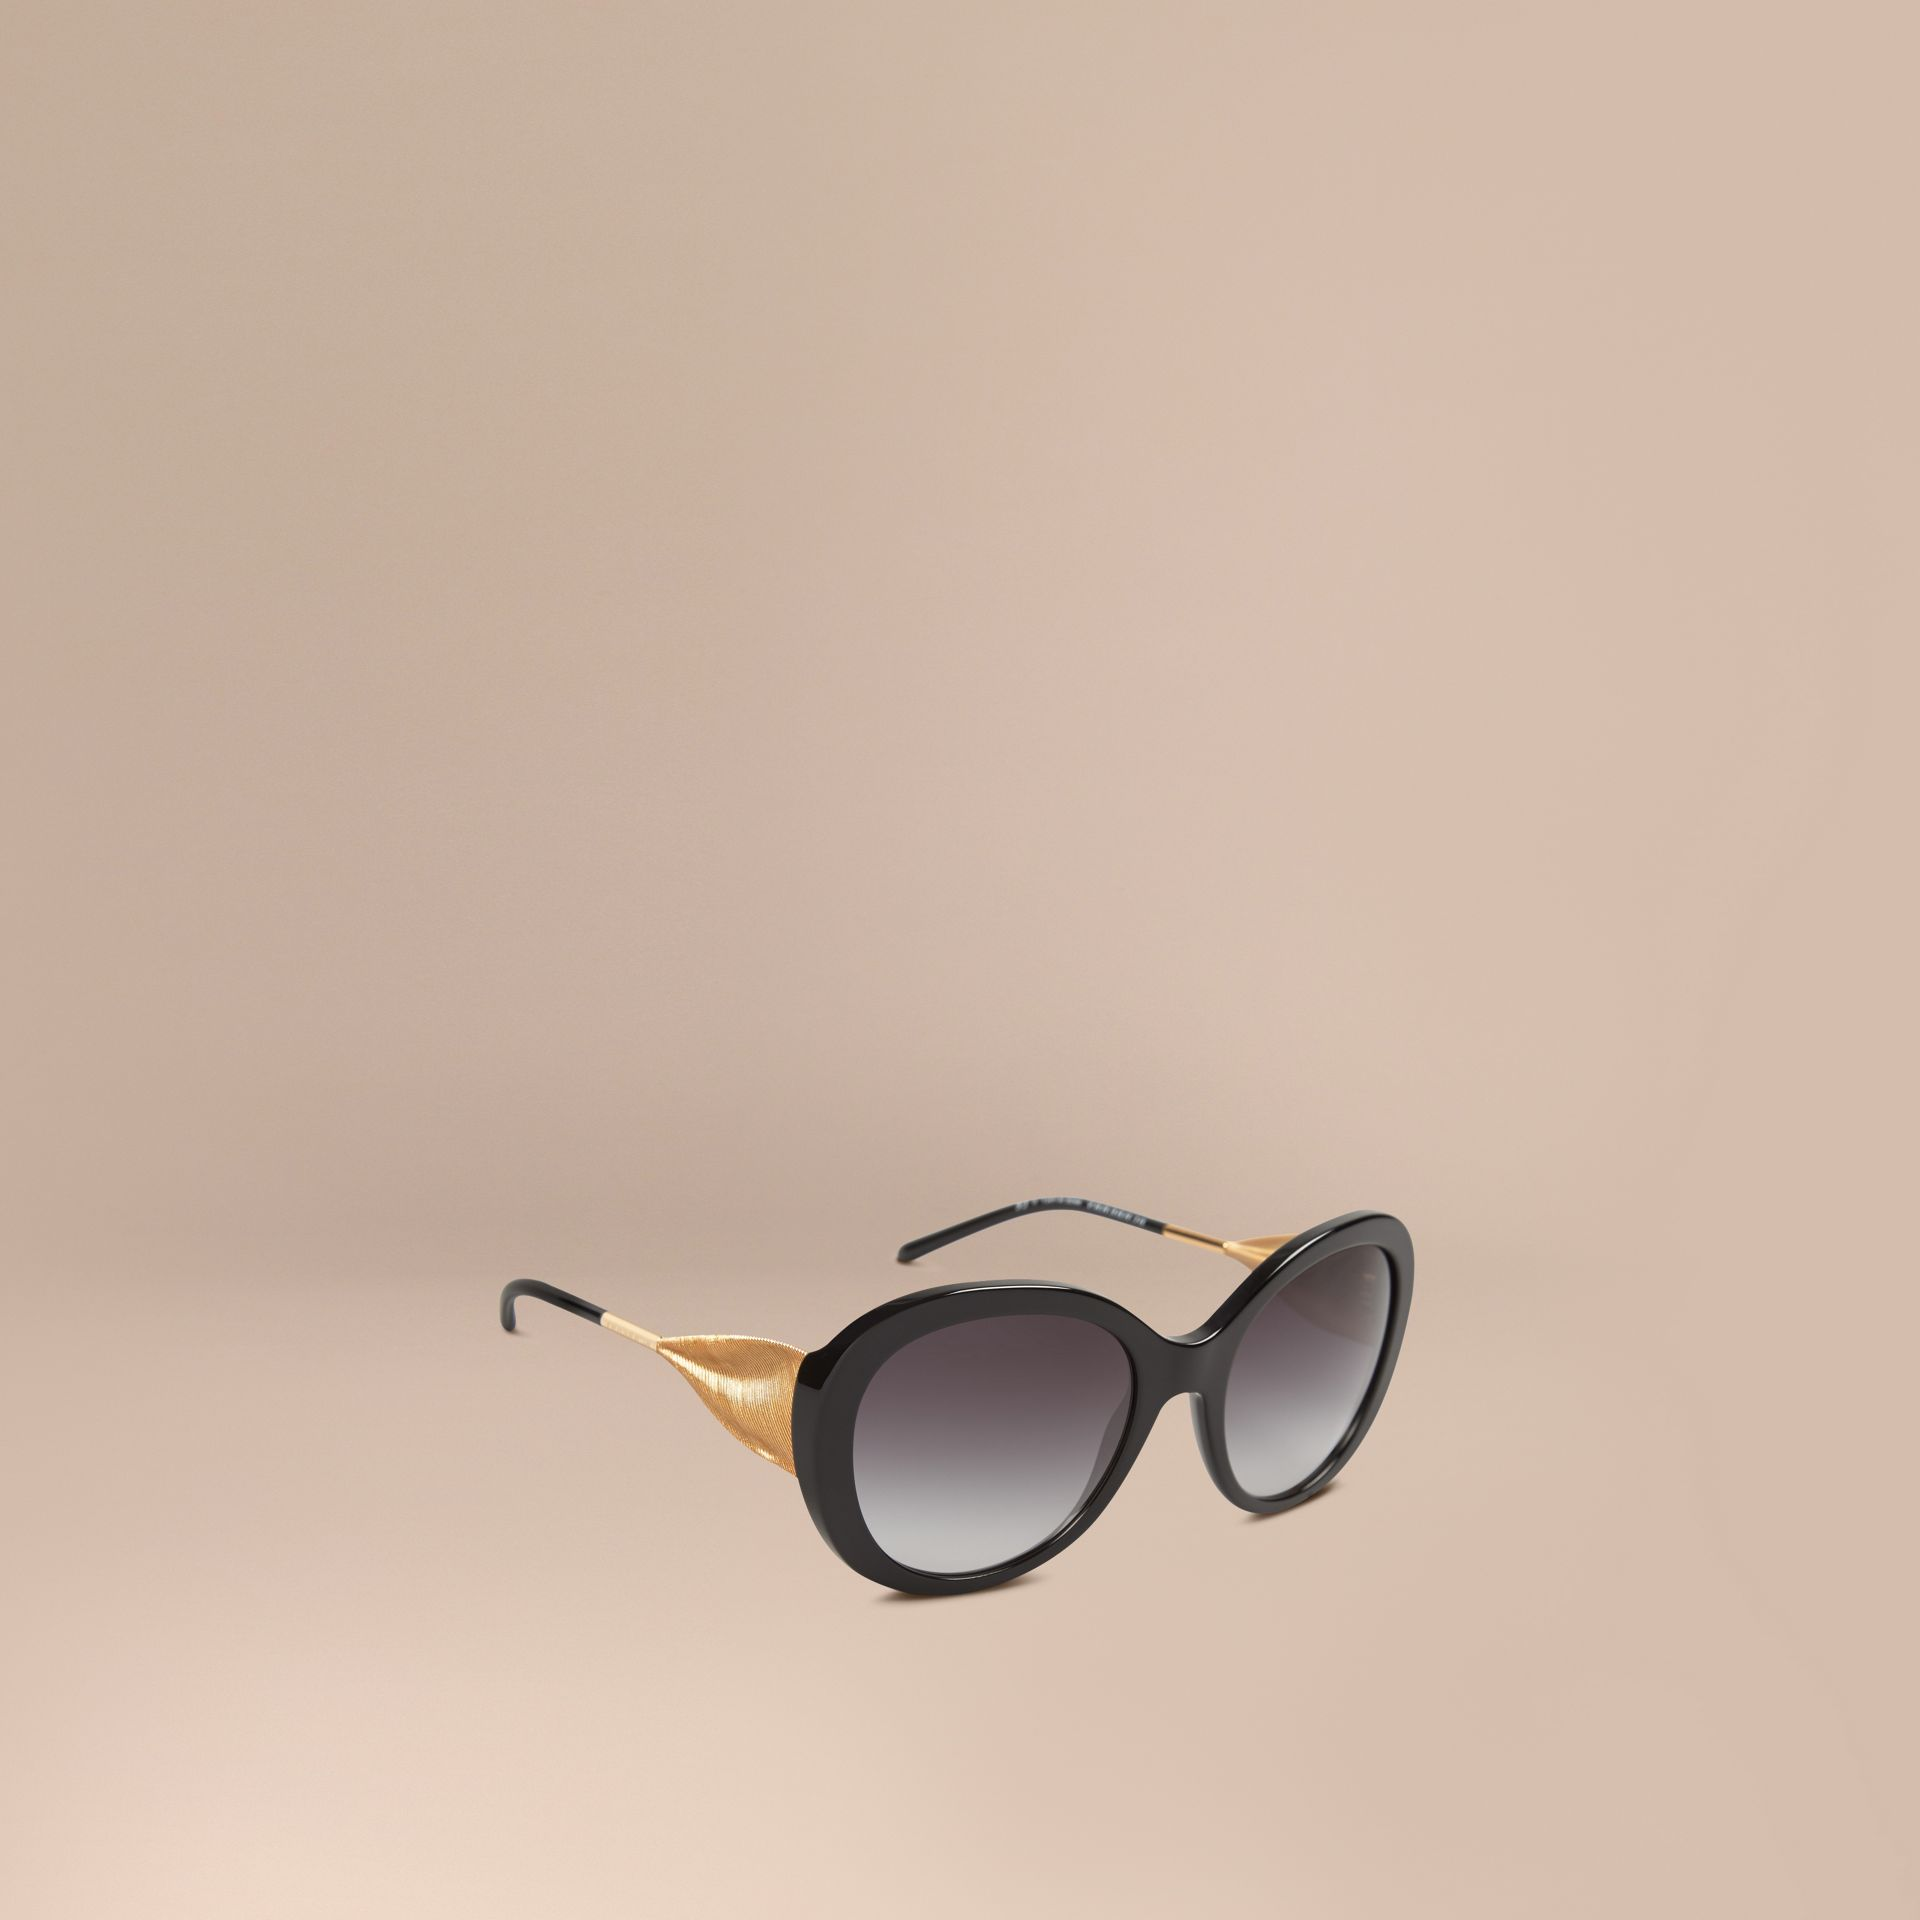 Oversize Round Frame Sunglasses in Black - gallery image 1